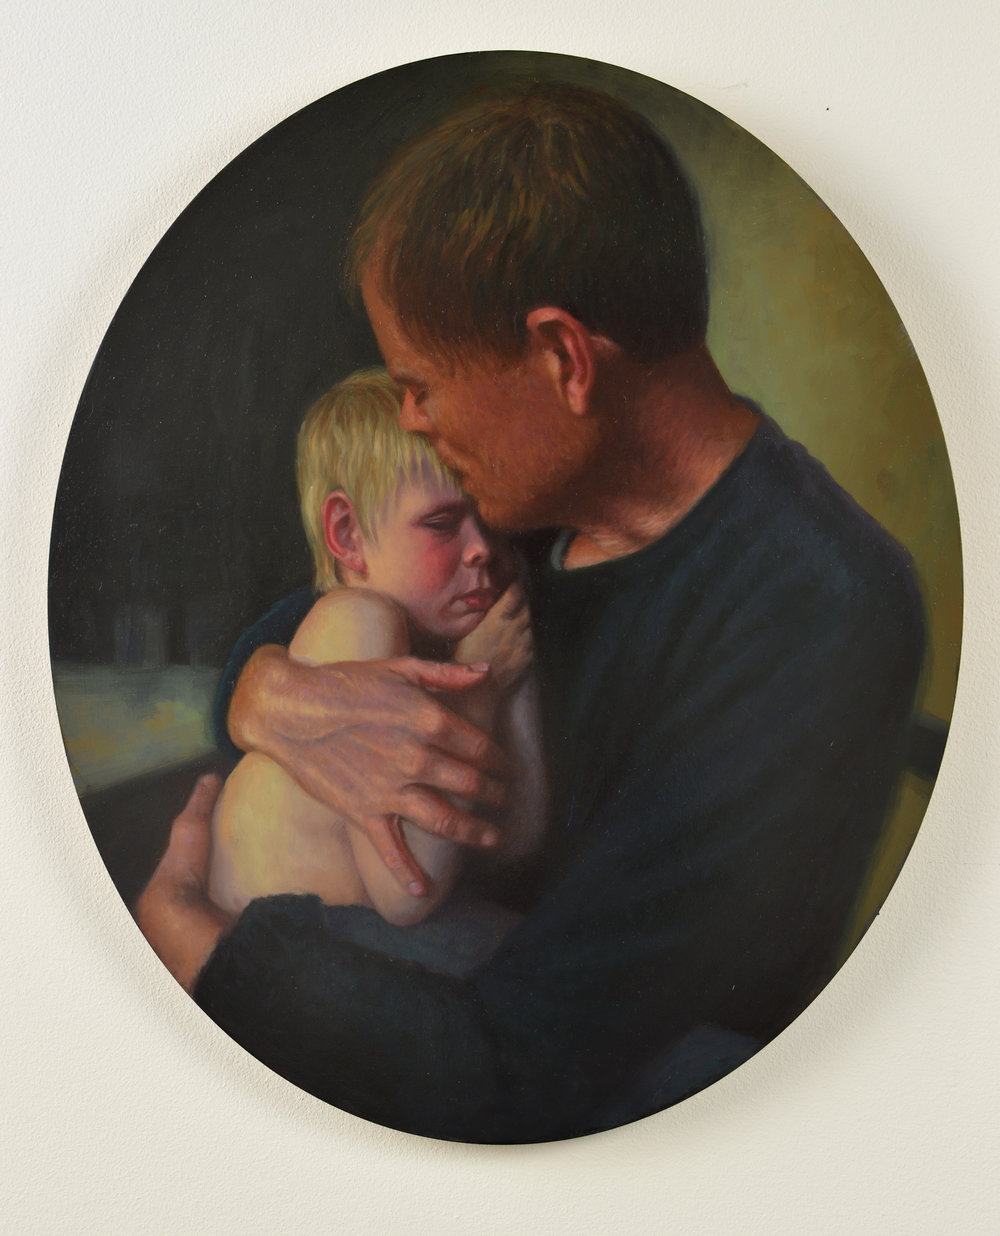 fathers 50 x 60 cm oil on panel 2018.jpg